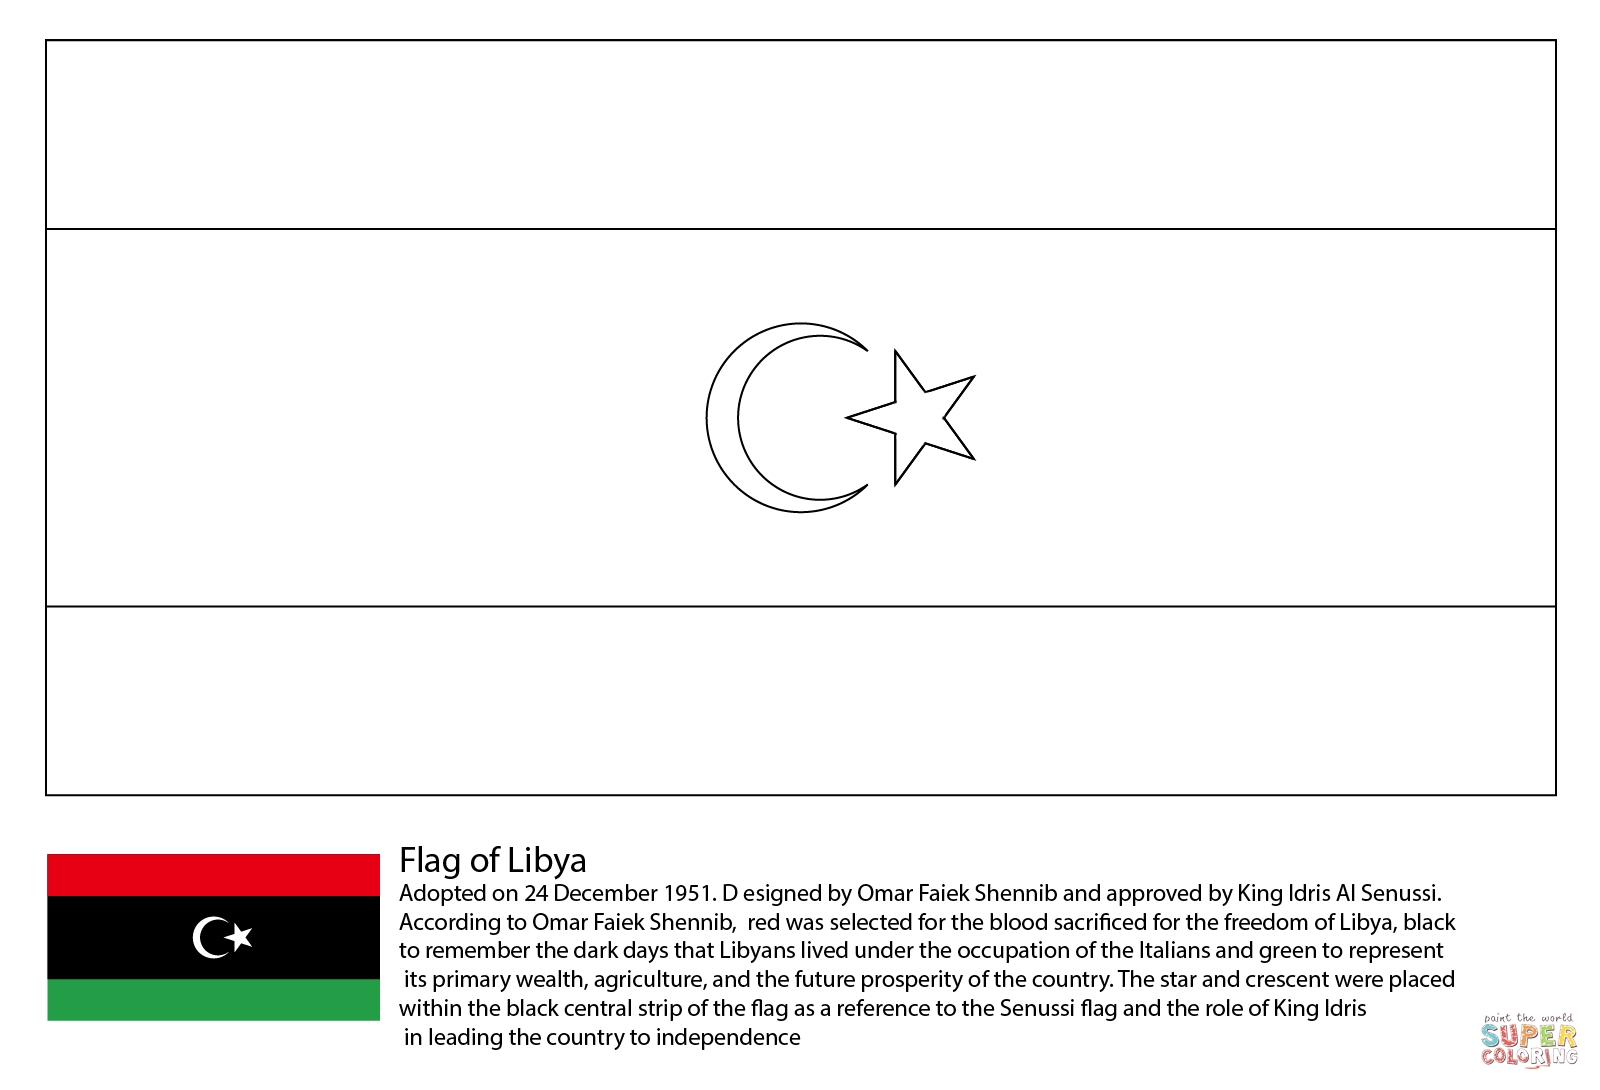 madagascar coloring pages - flag of libya